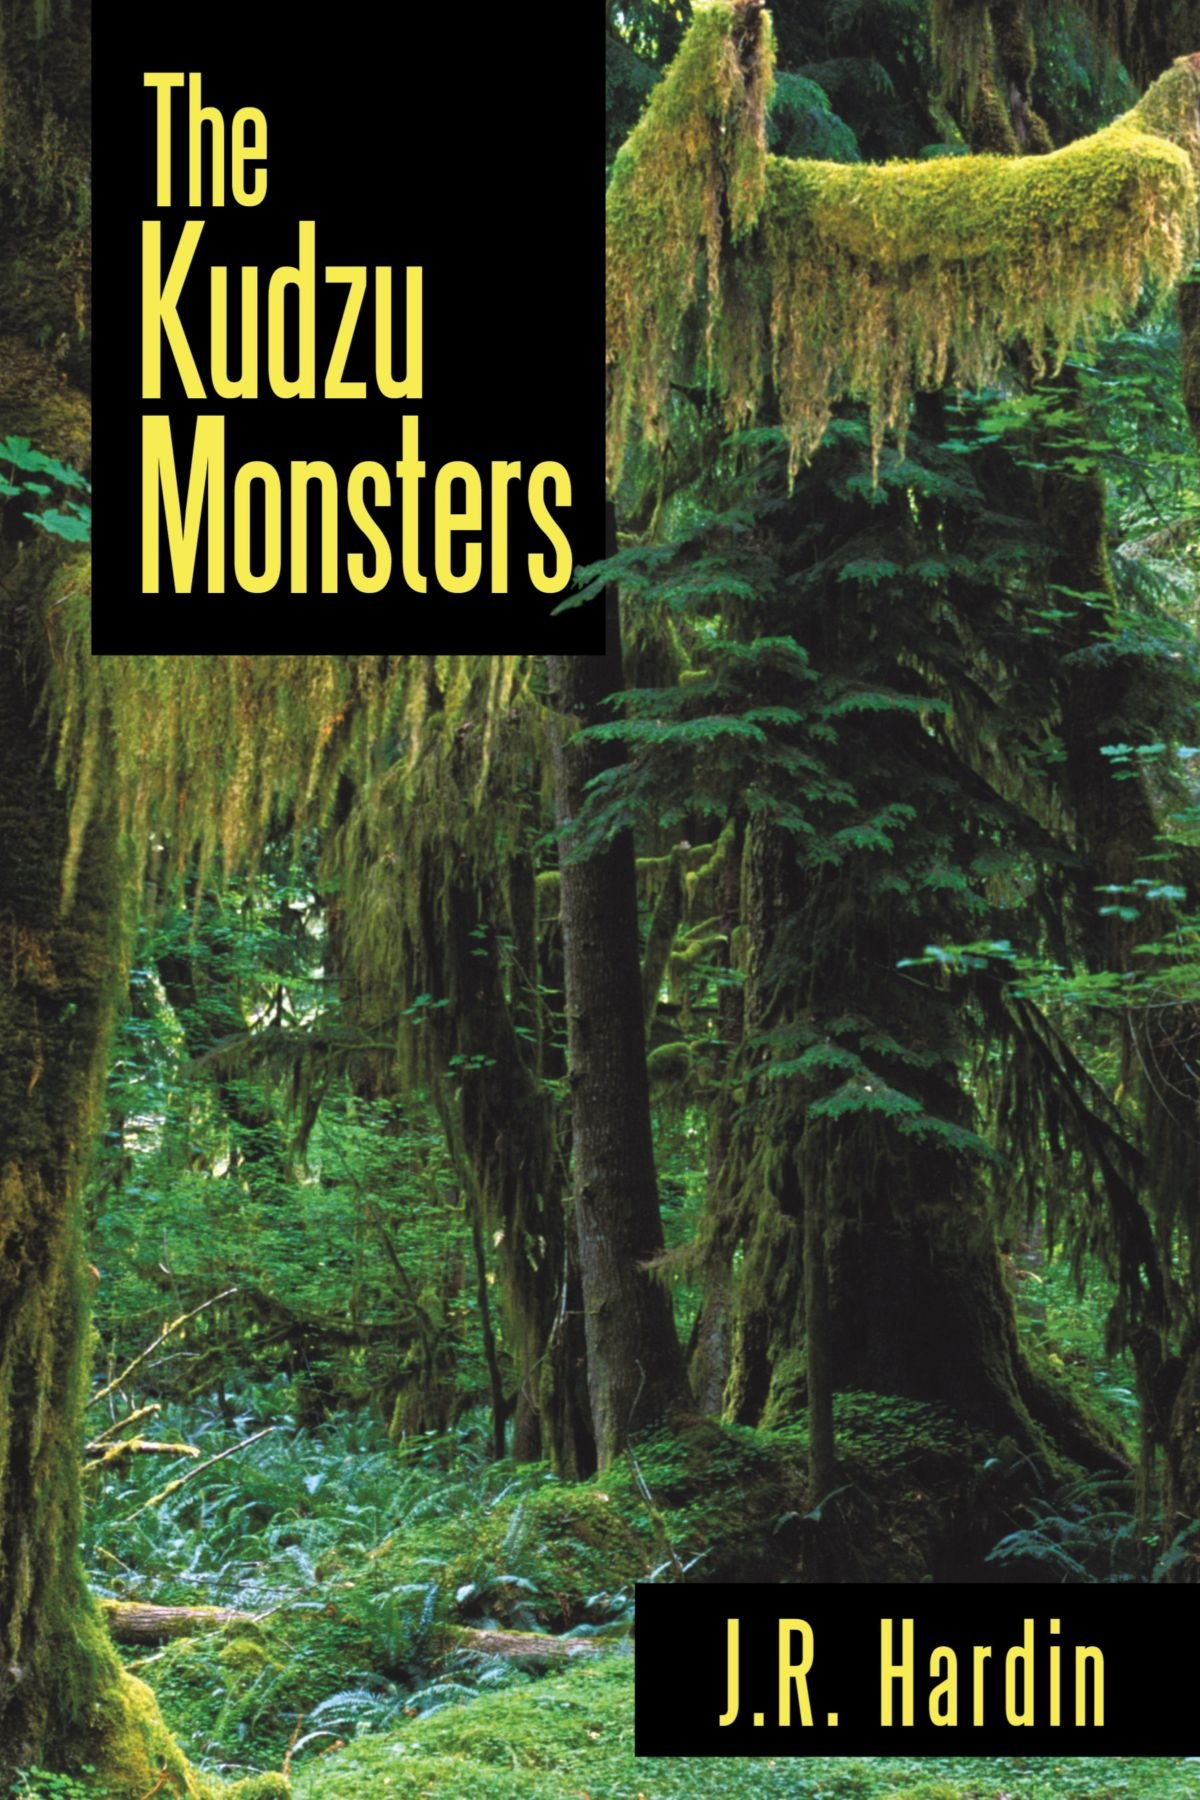 Download The Kudzu Monsters ebook